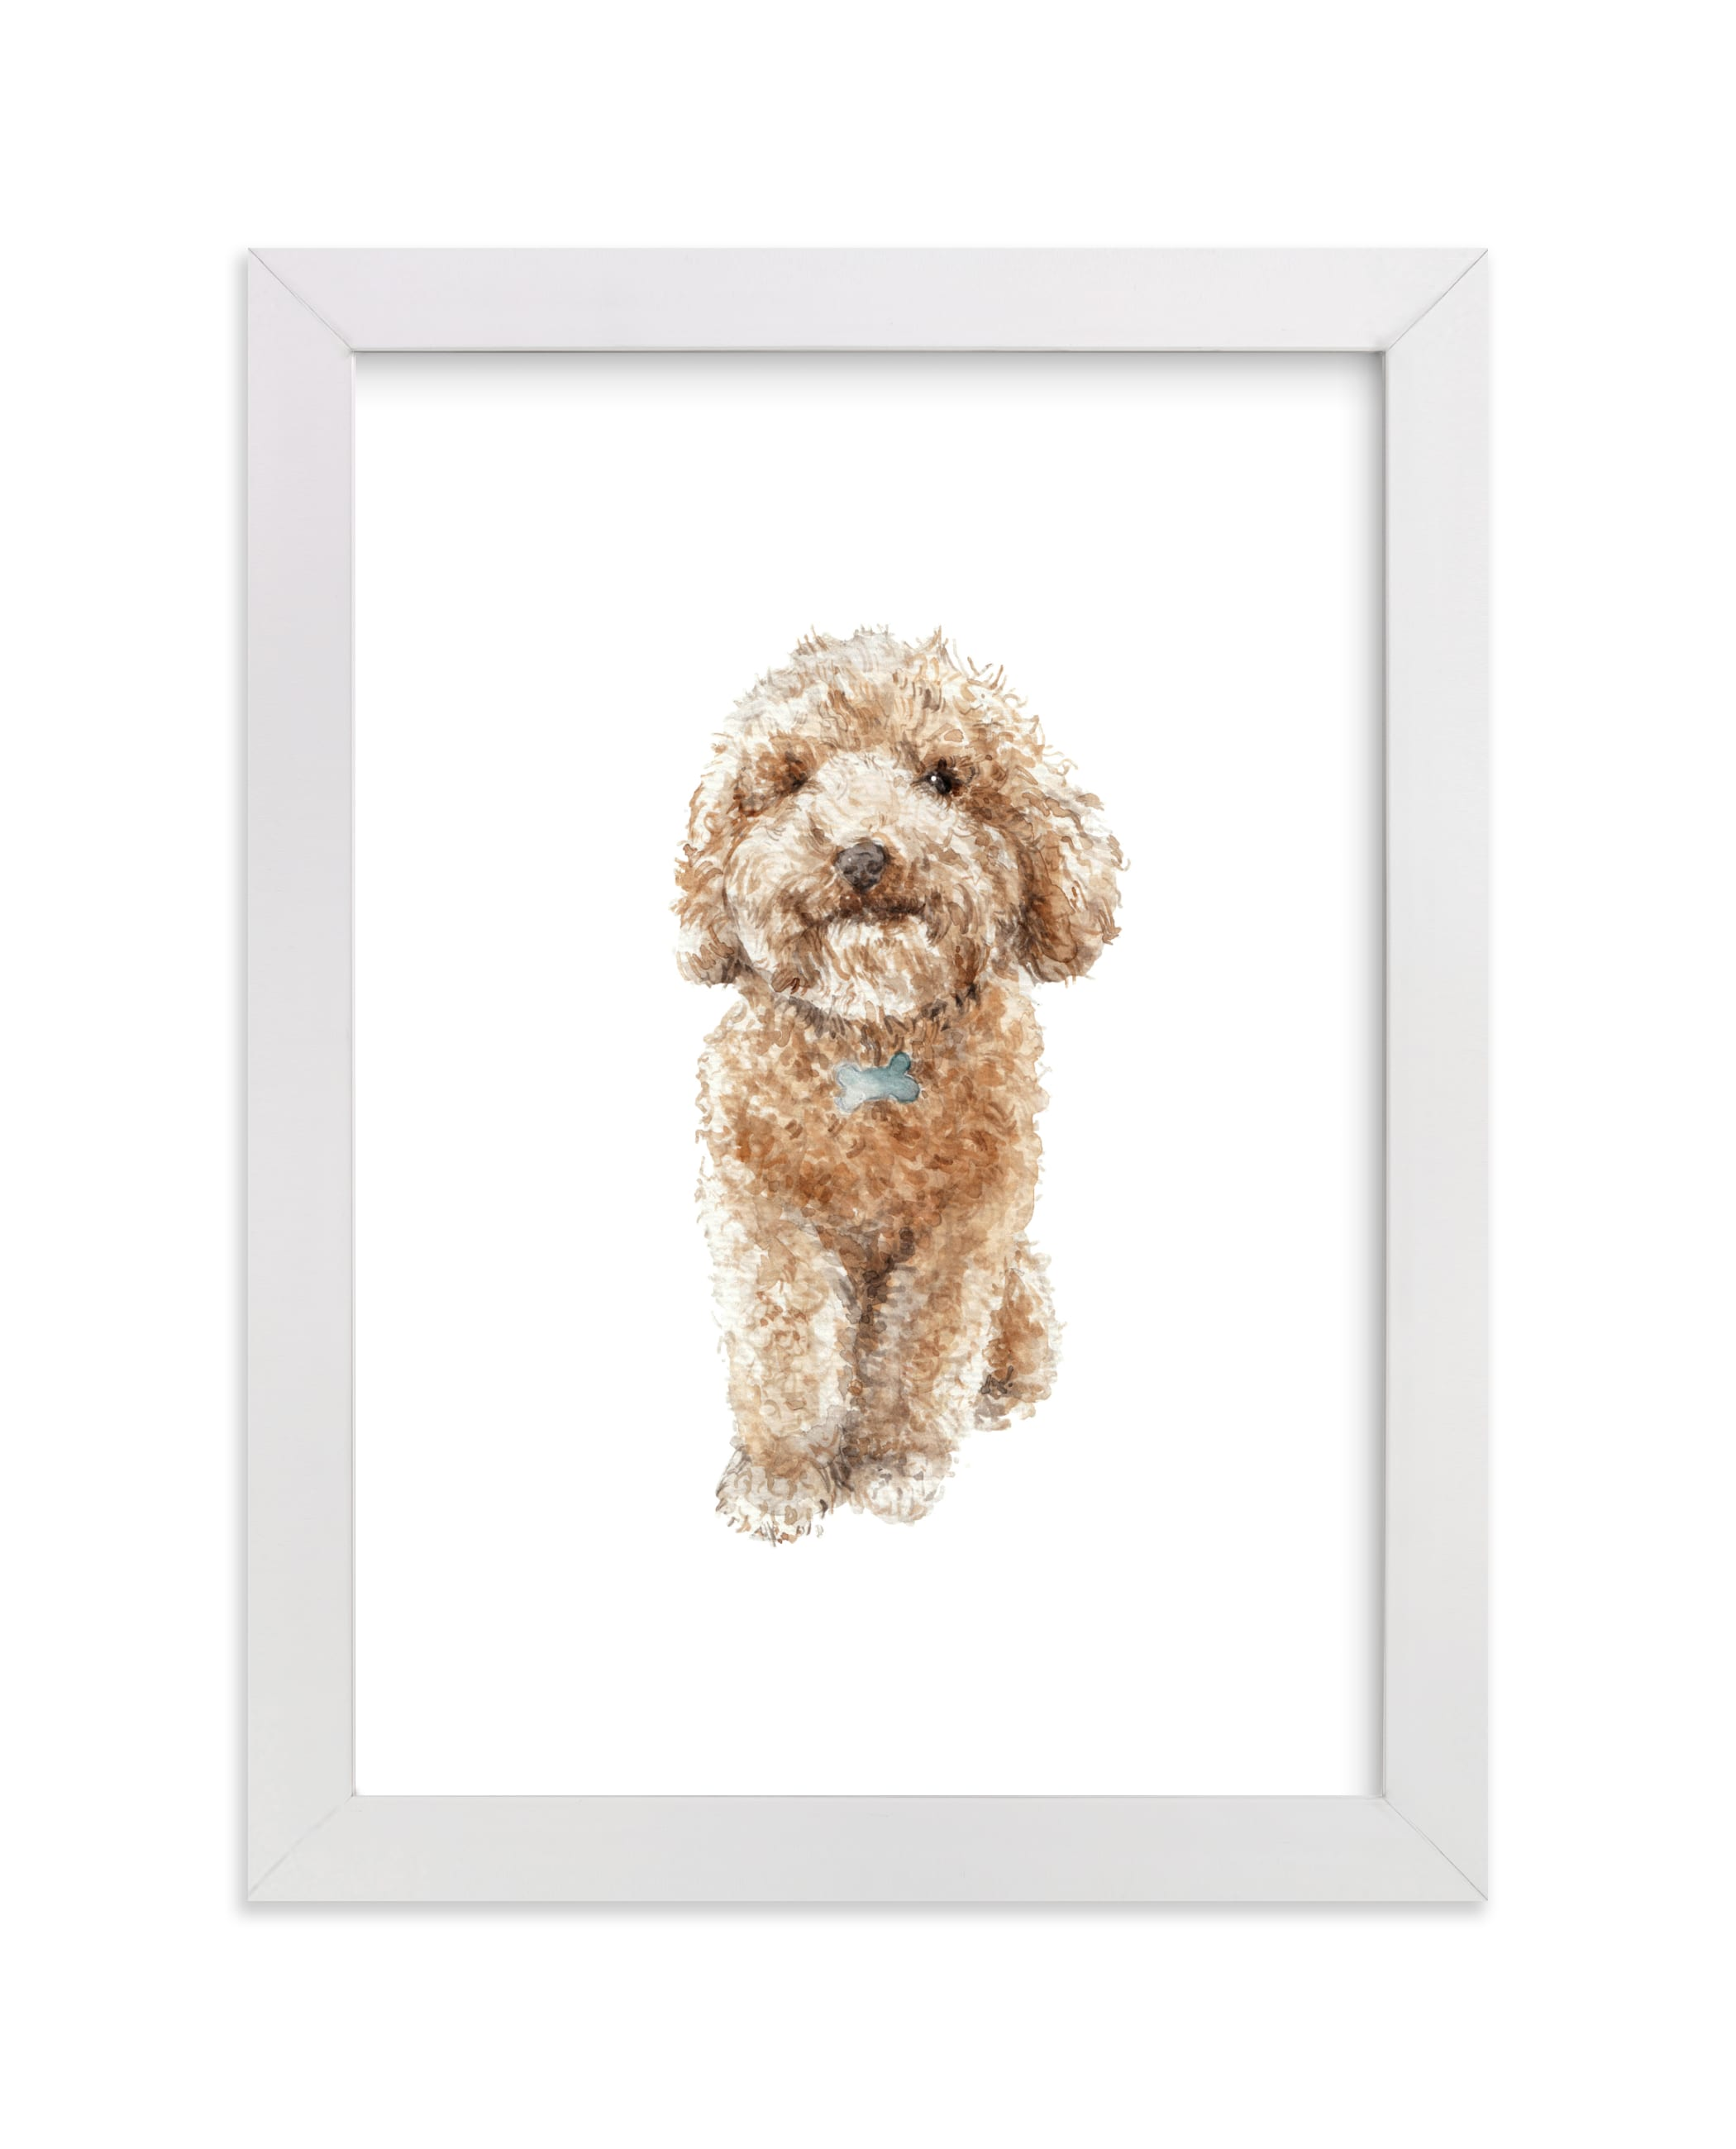 """""""Smiling Poodle Puppy"""" - Art Print by Lauren Rogoff in beautiful frame options and a variety of sizes."""